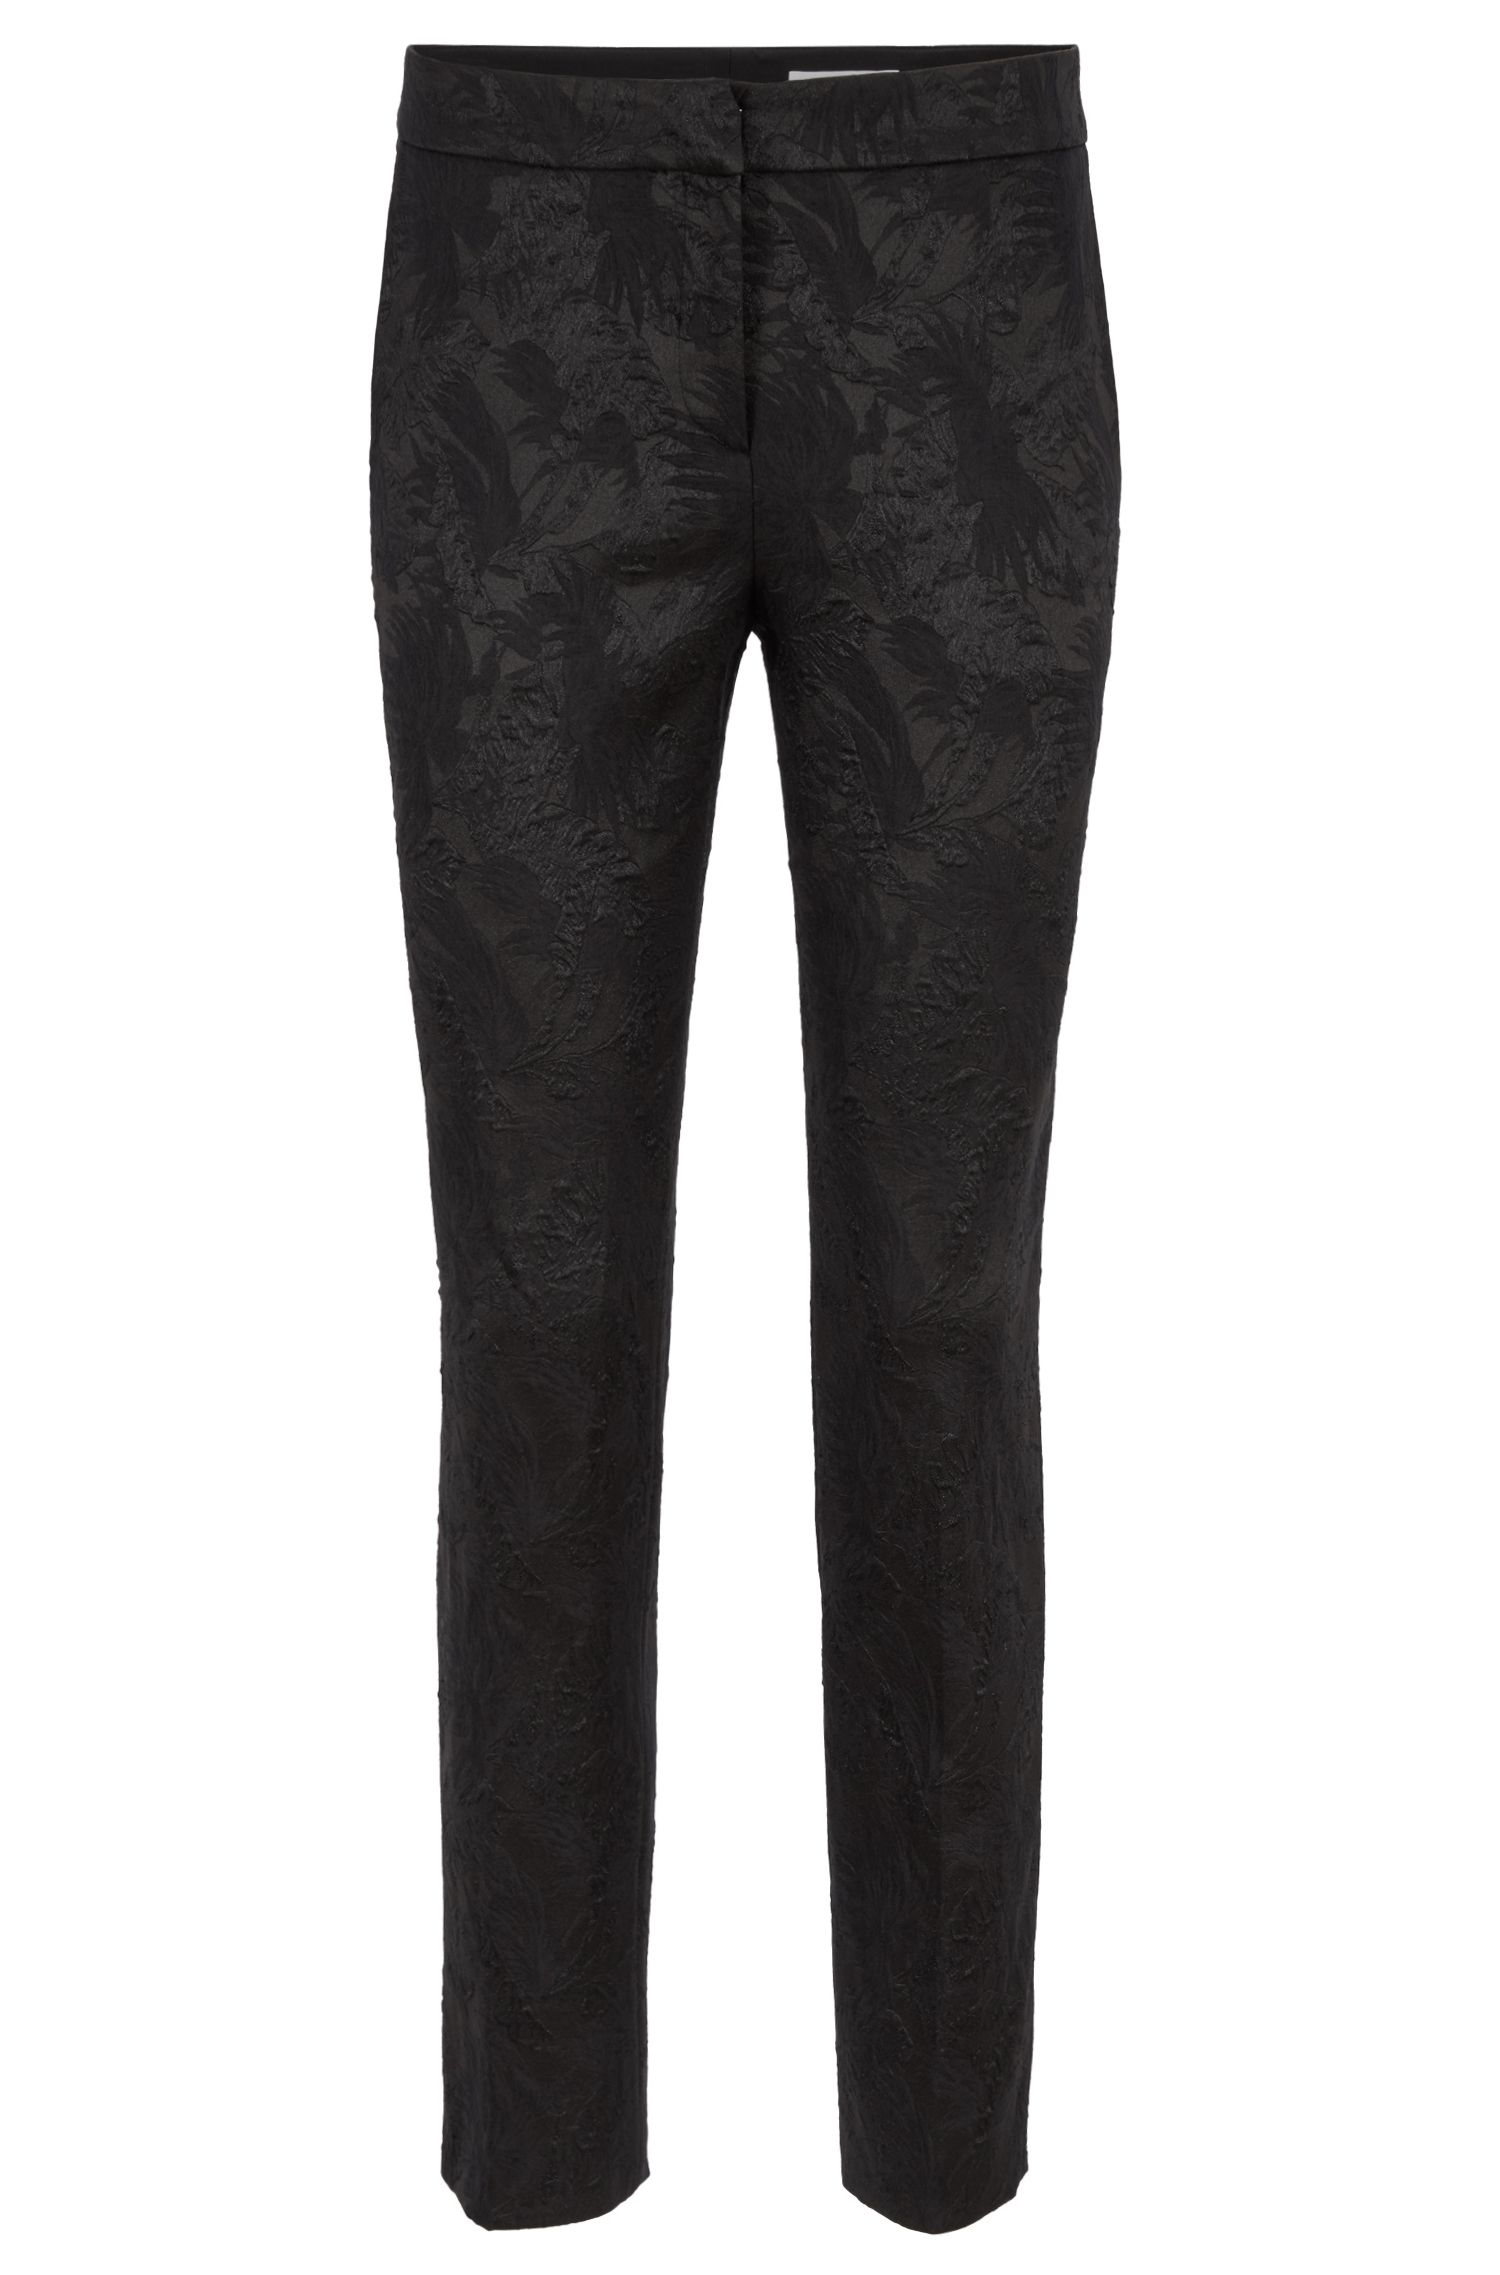 Regular-fit cropped trousers in Italian floral jacquard, Black